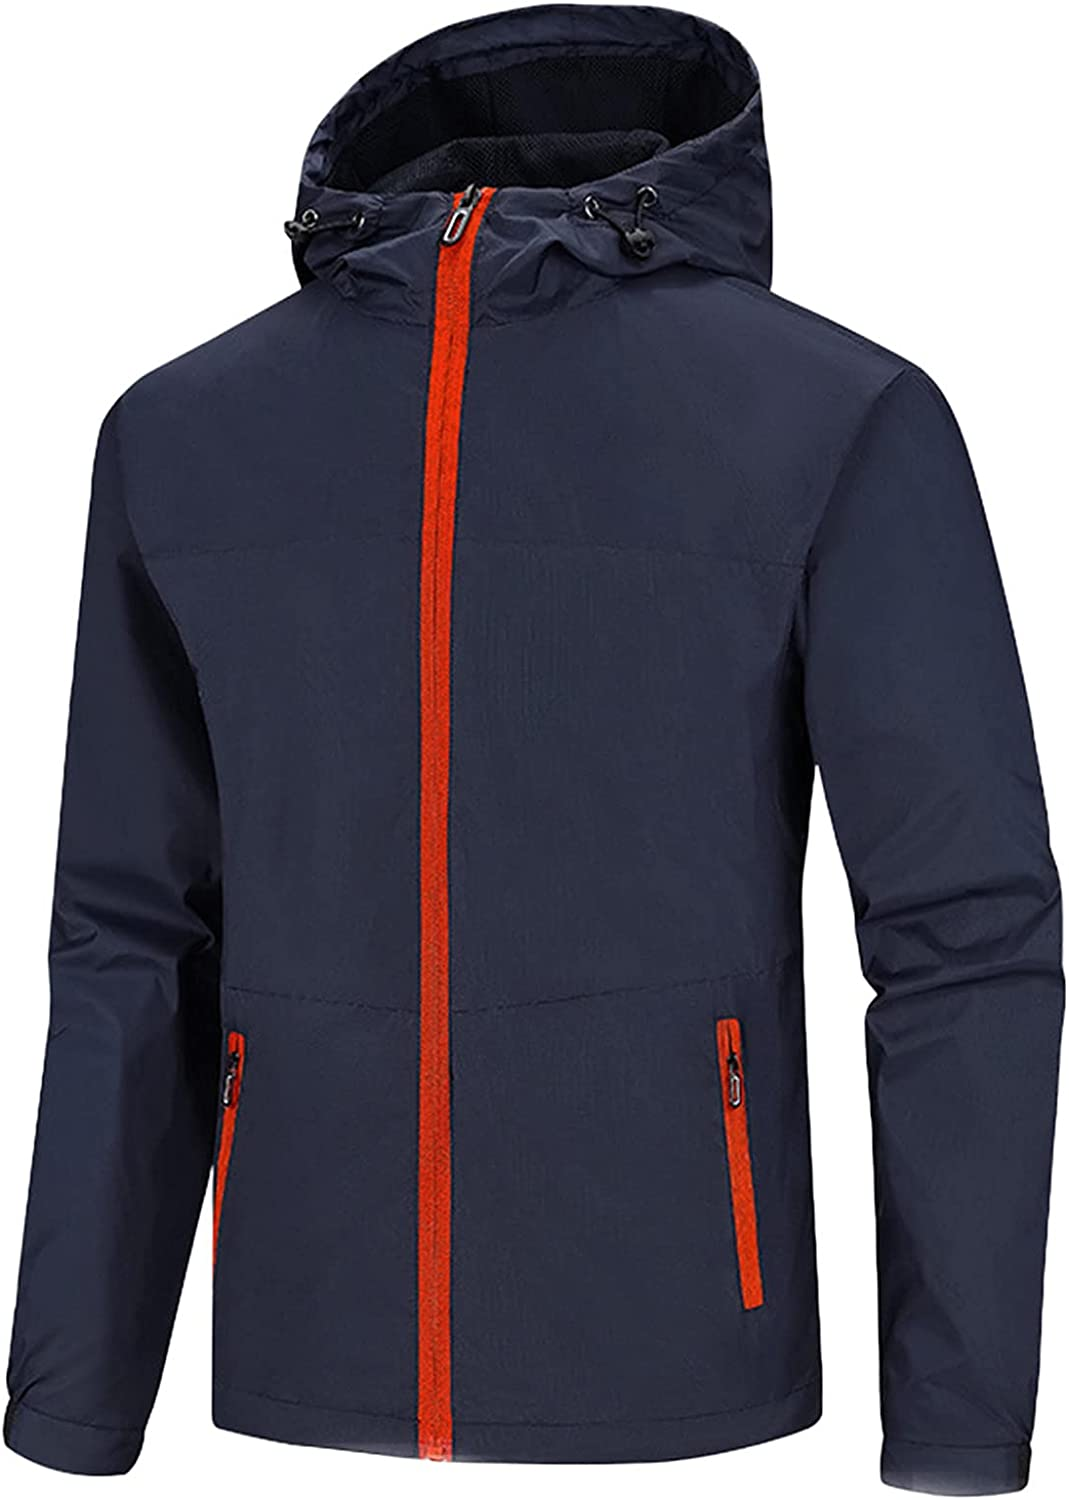 Men's Jackets Waterproof Breathable Hooded Trench Coats Lightweight Thin Windbreaker Casual Solid Outdoor Travel Jacket